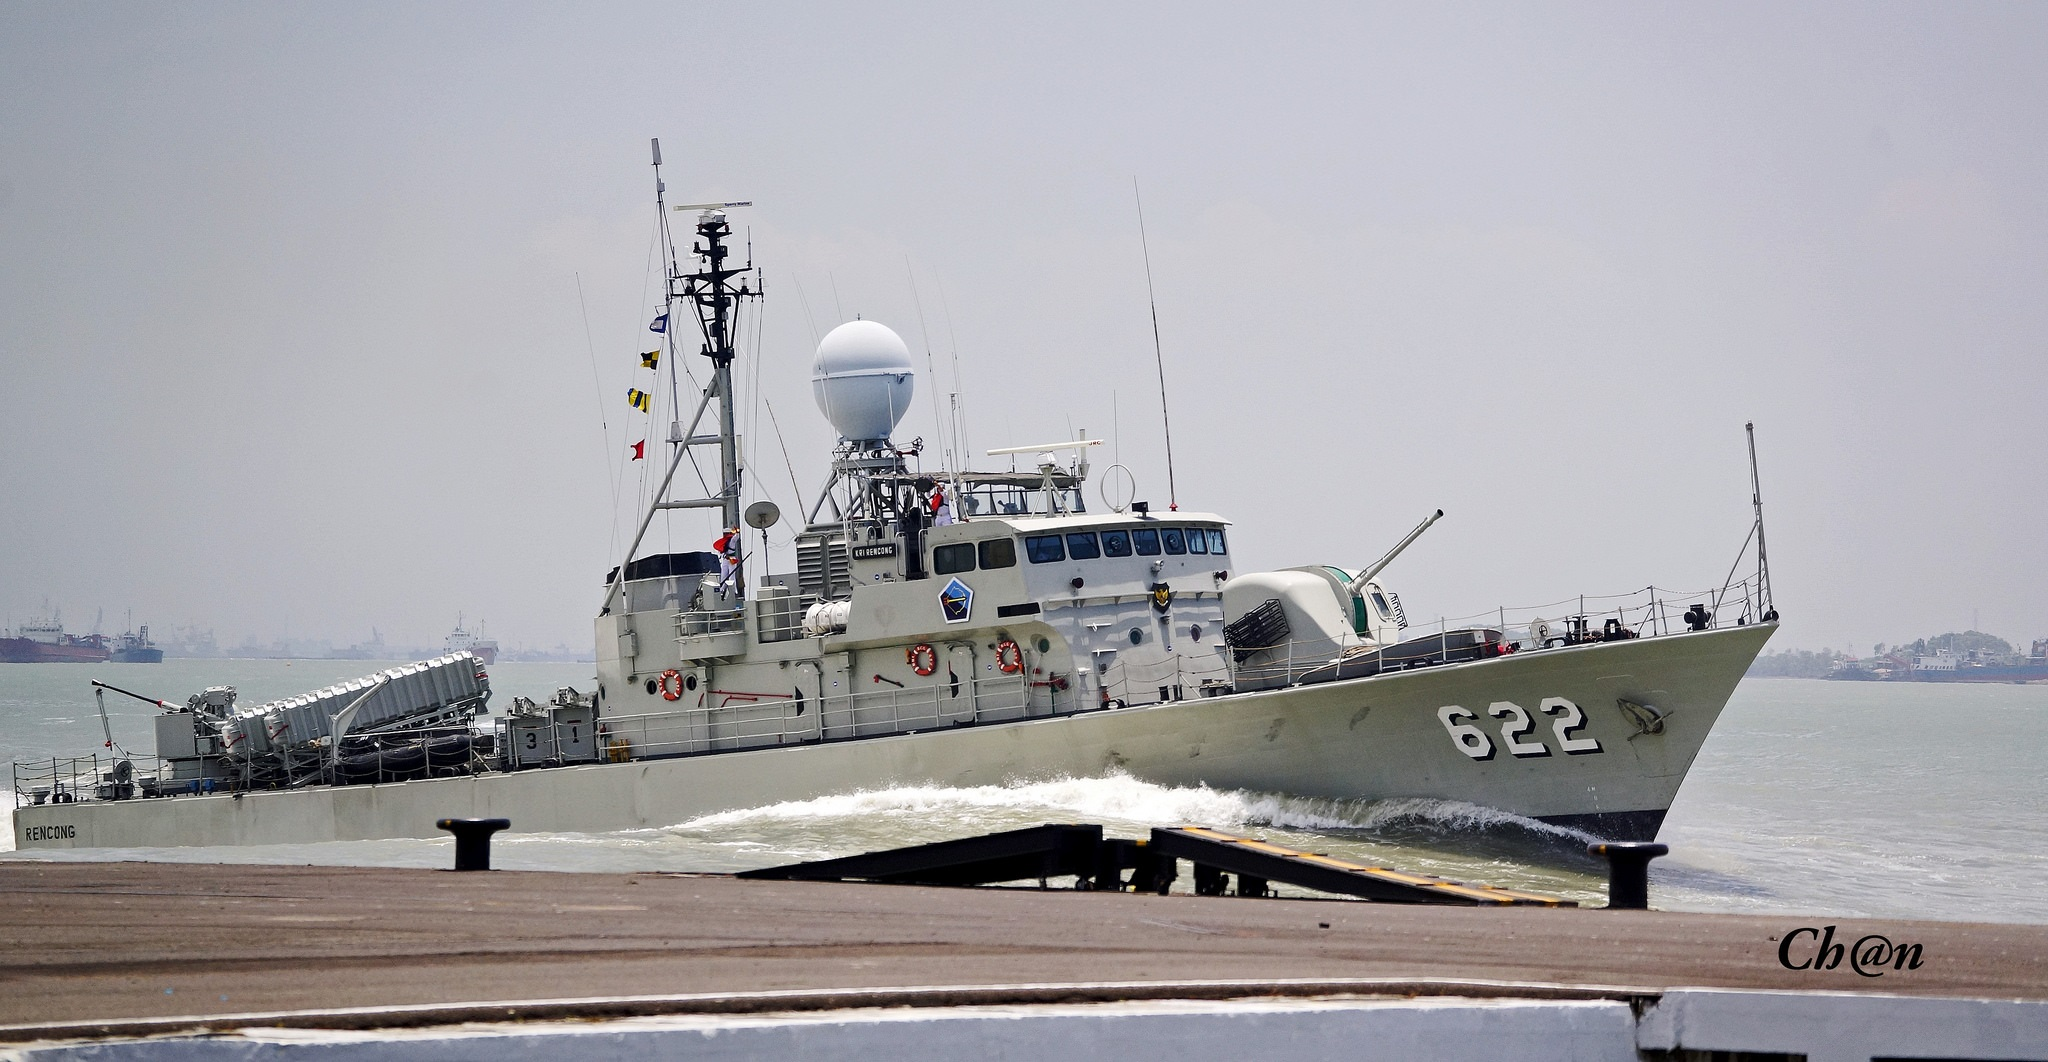 Indonesian rocket boat Rencong died as a result of a fire in Indonesia, boat, Rencong, sank, onboard, number, rocket, fleet, result, boats, composition, former, boats, fire, ship, September, miles, engine, Around, main